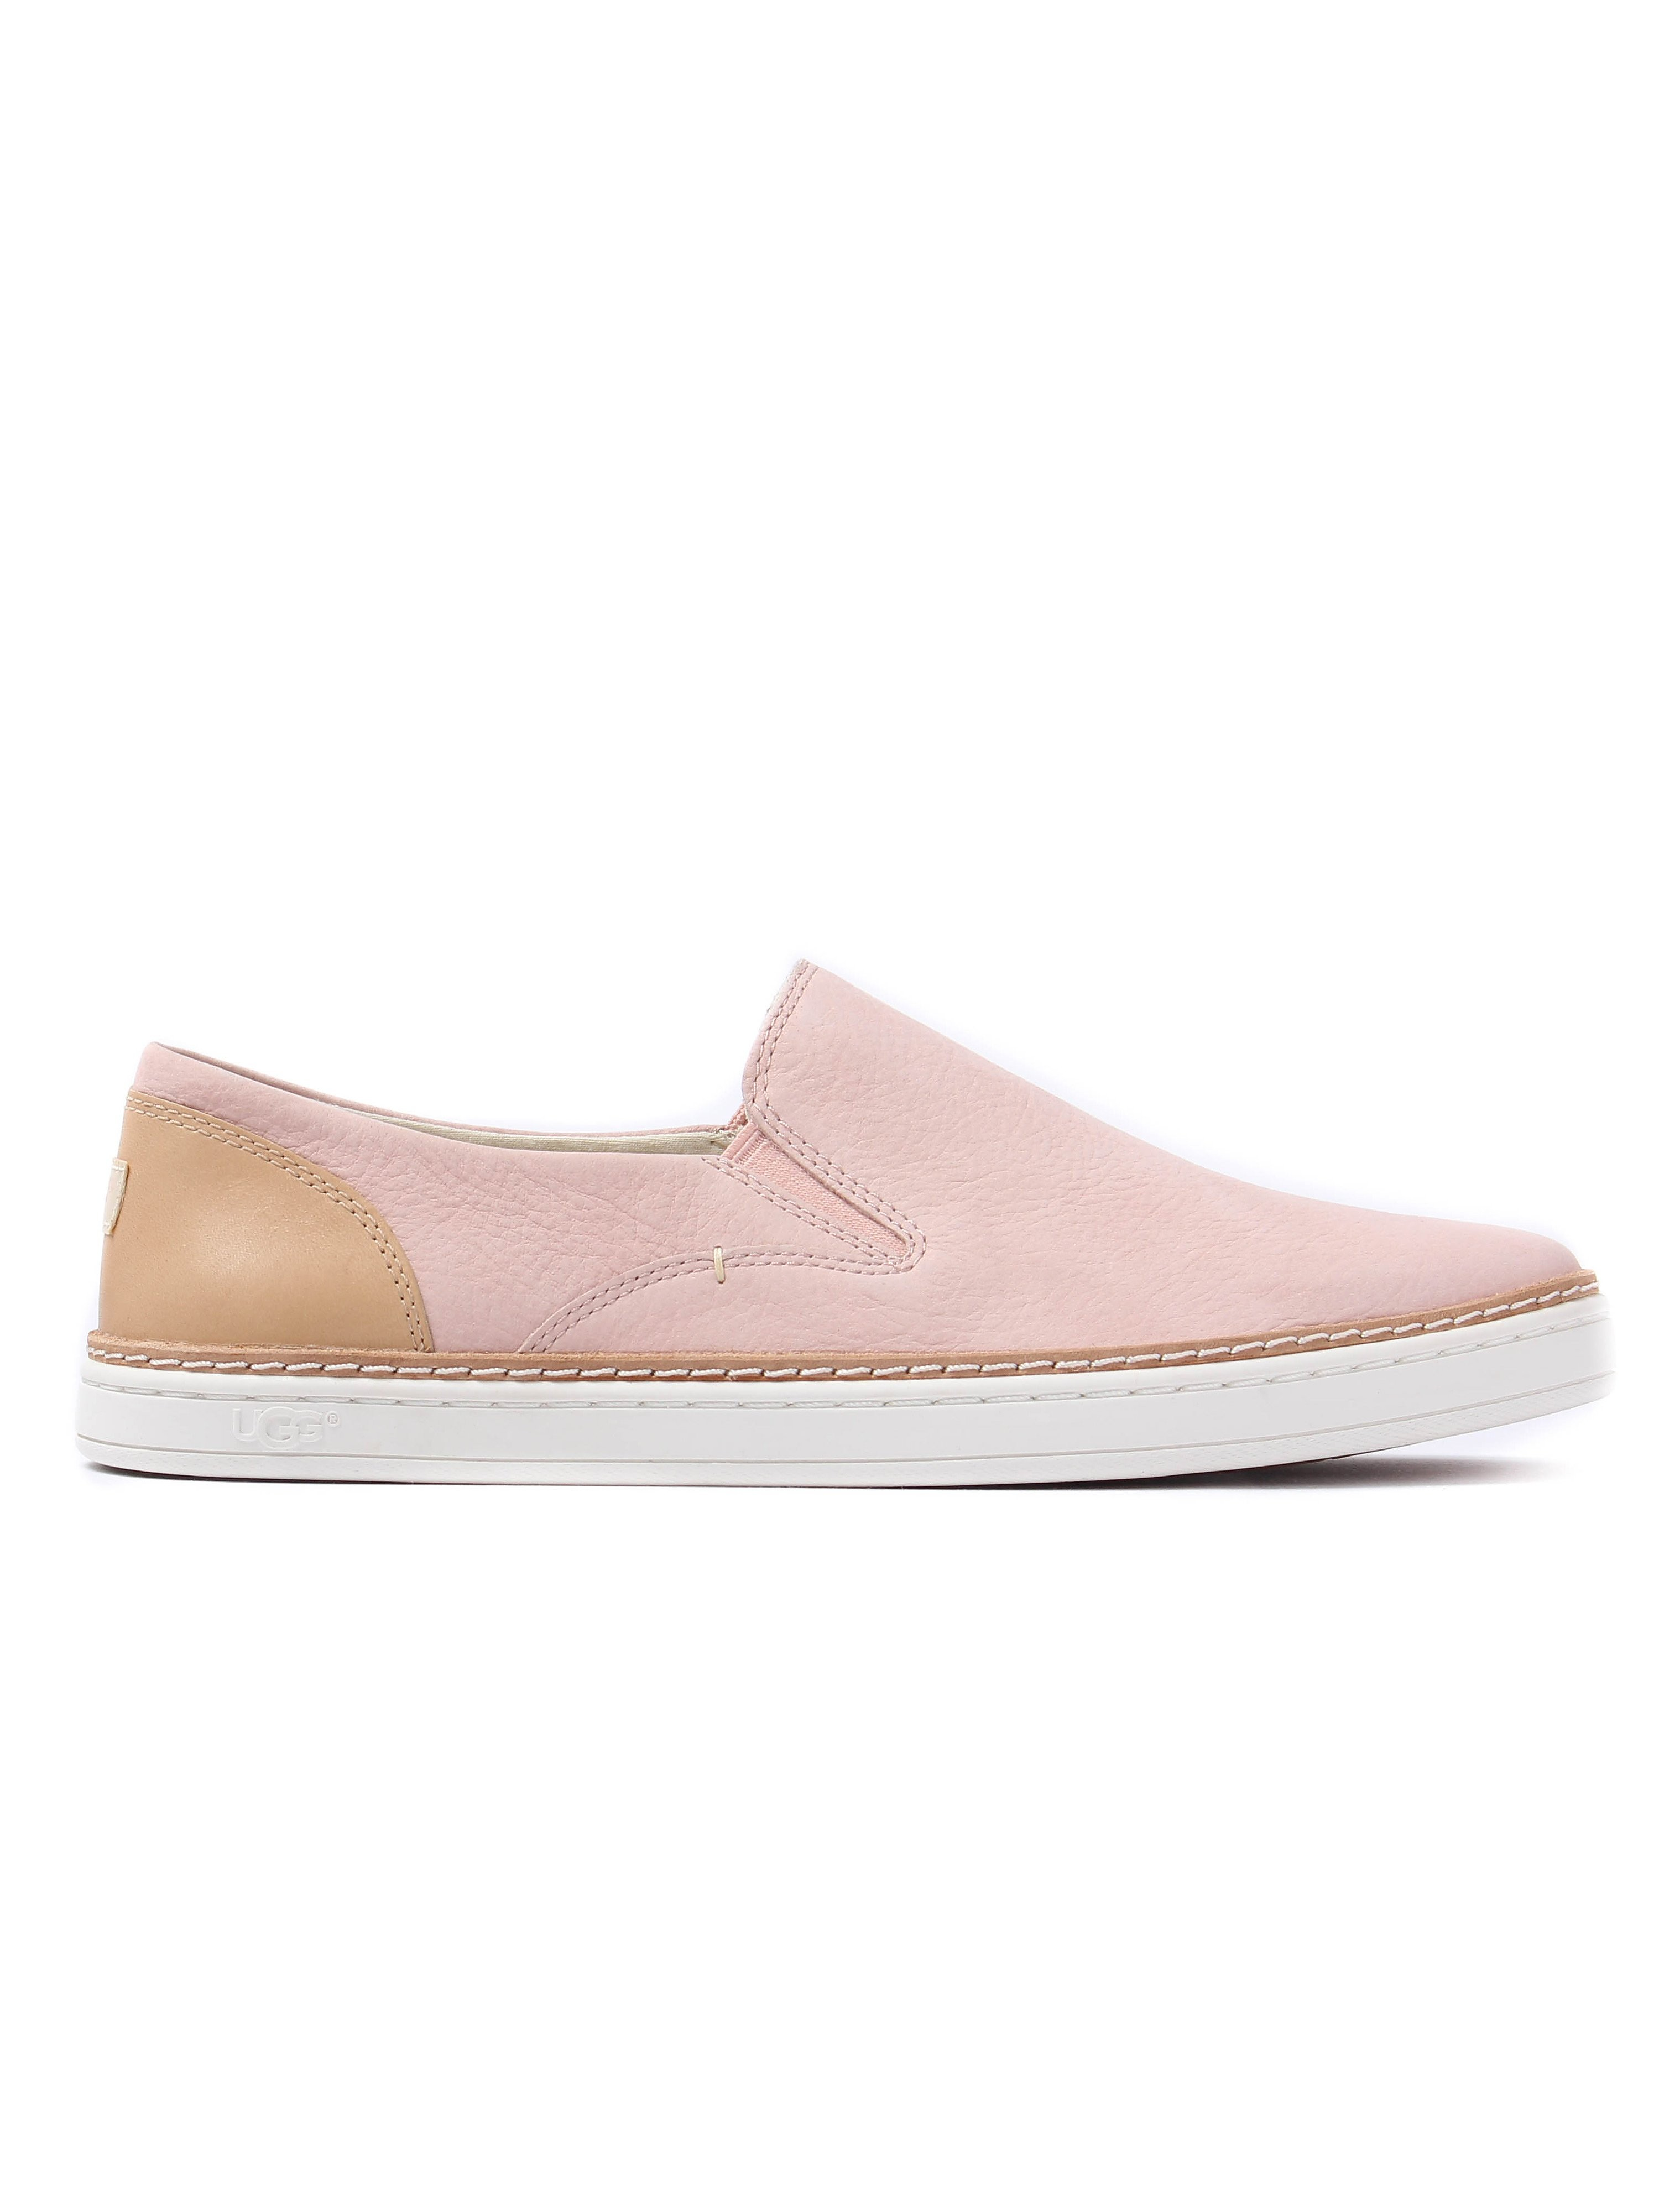 Ugg Women's Adley Nubuck Slip-On Trainers - Quartz